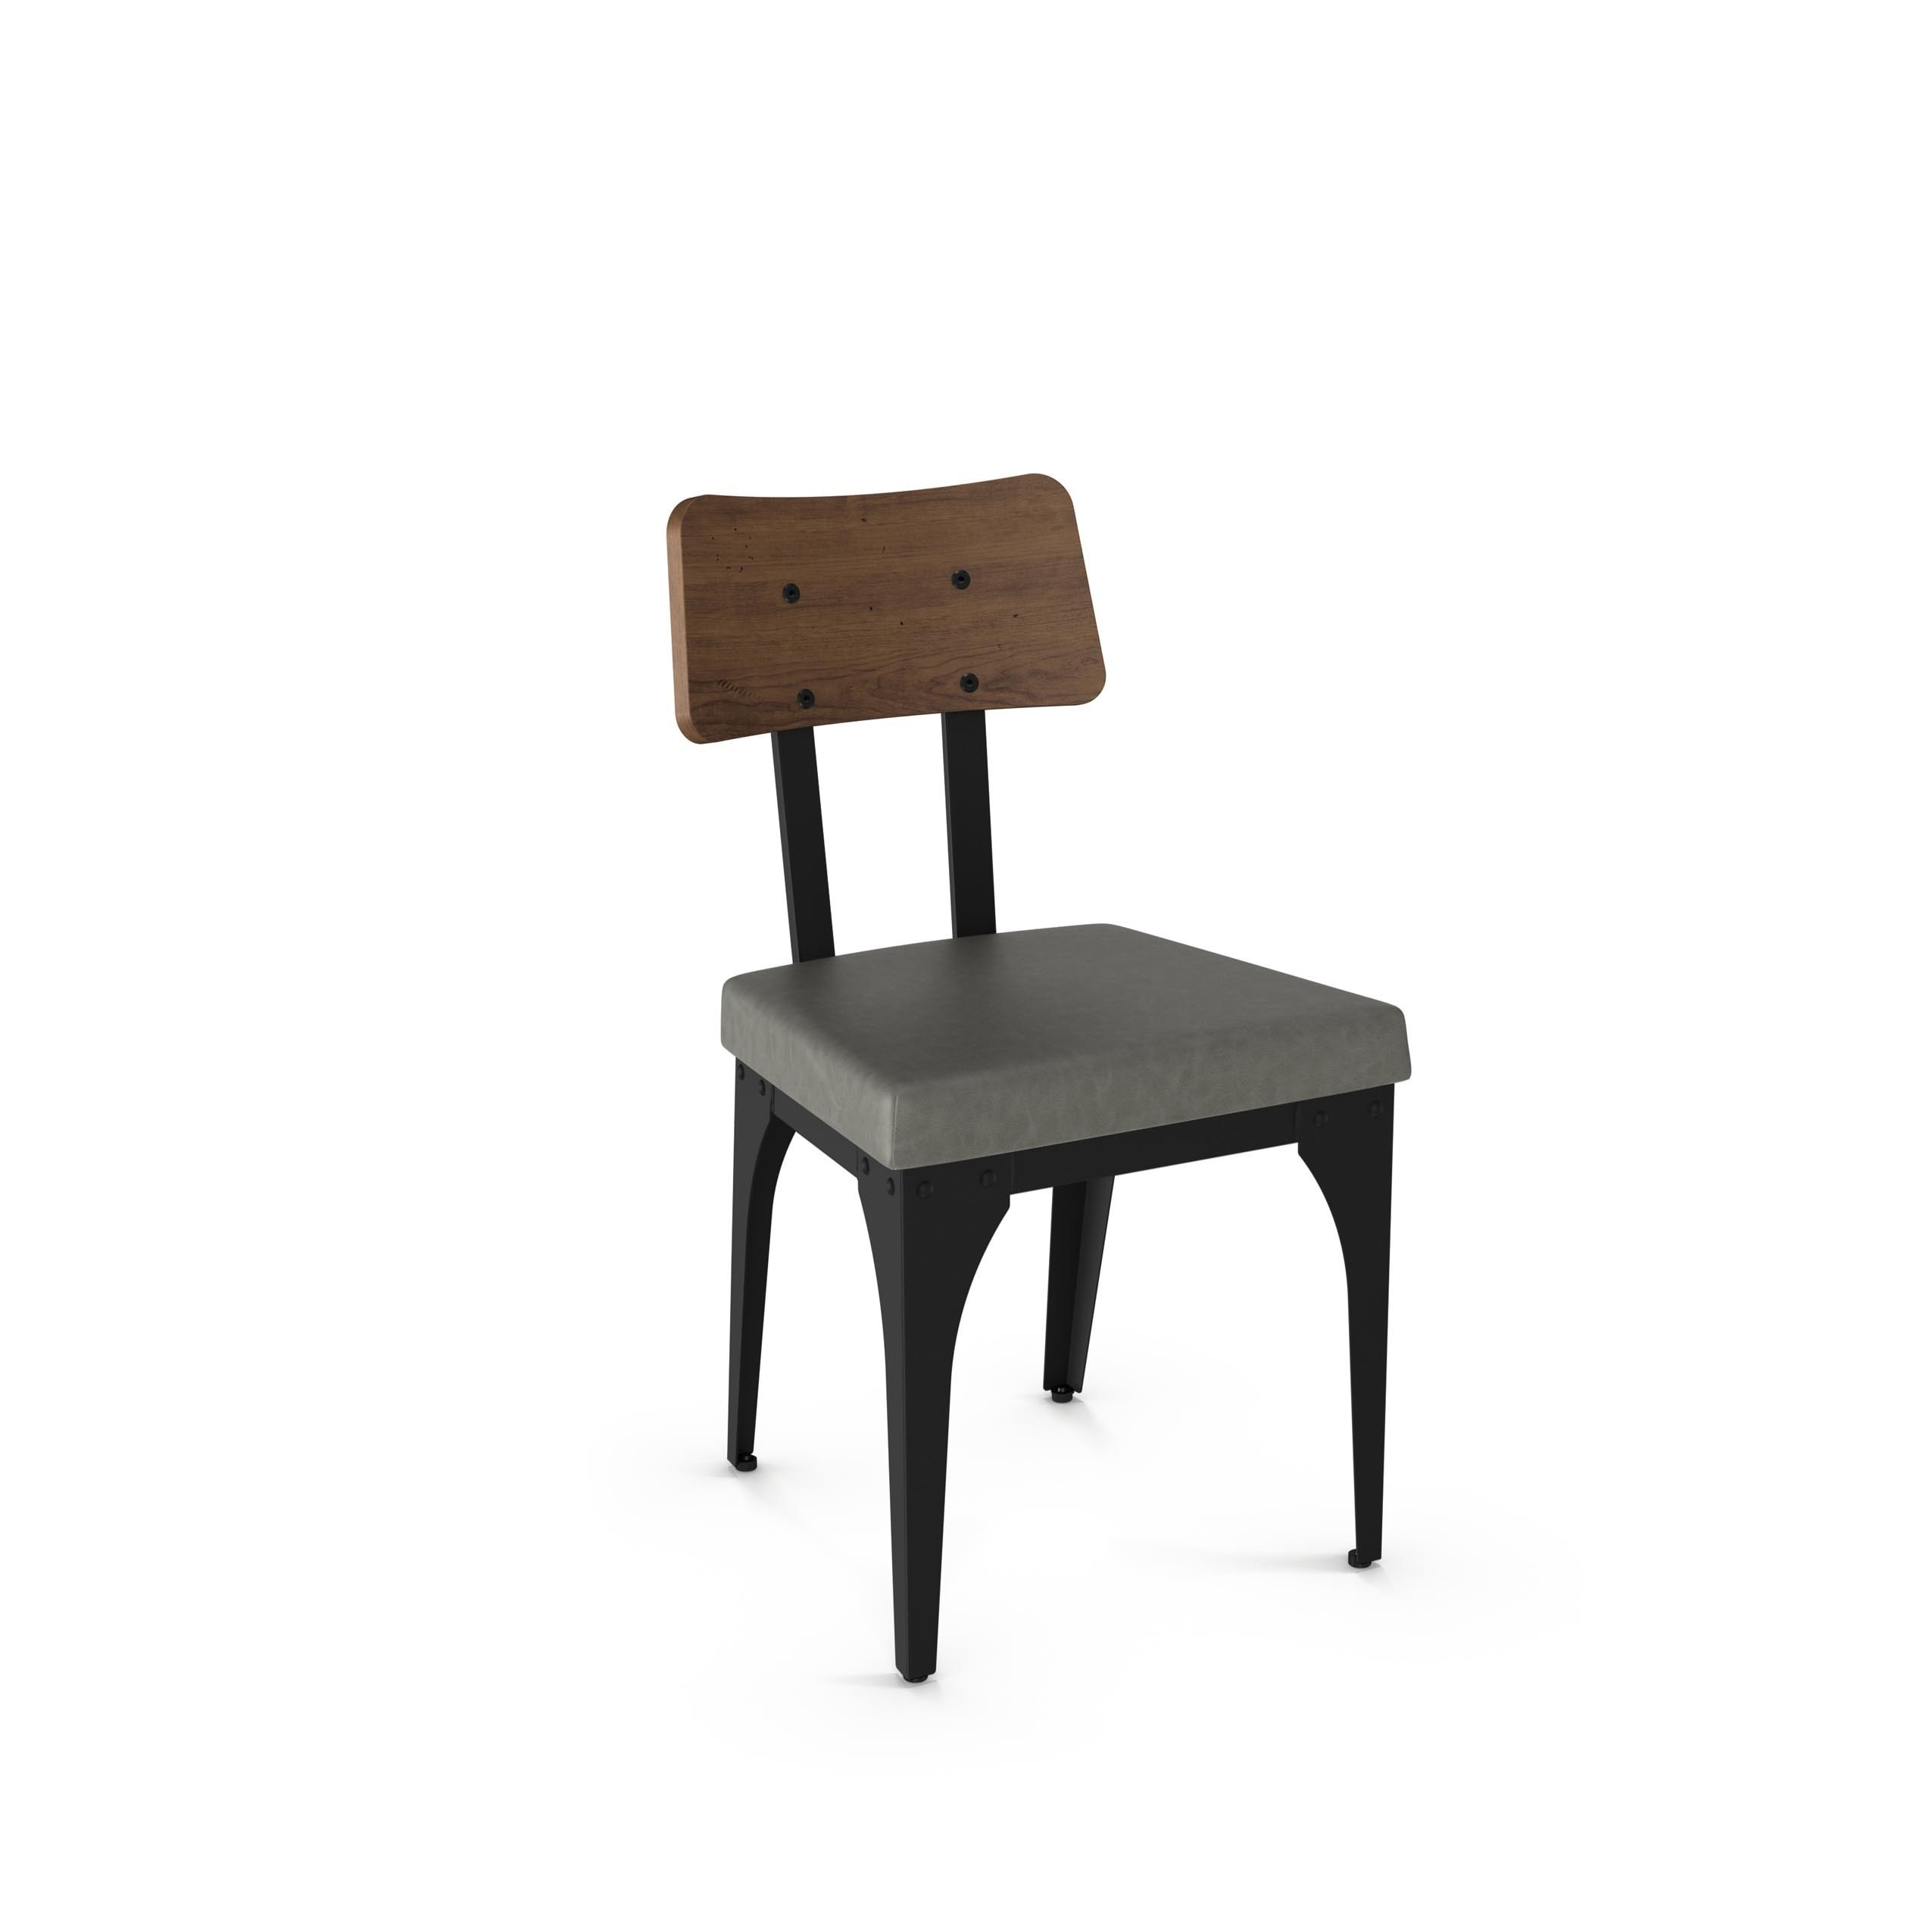 Carbon loft kettering upholstered chair with distressed wood backrest set of 2